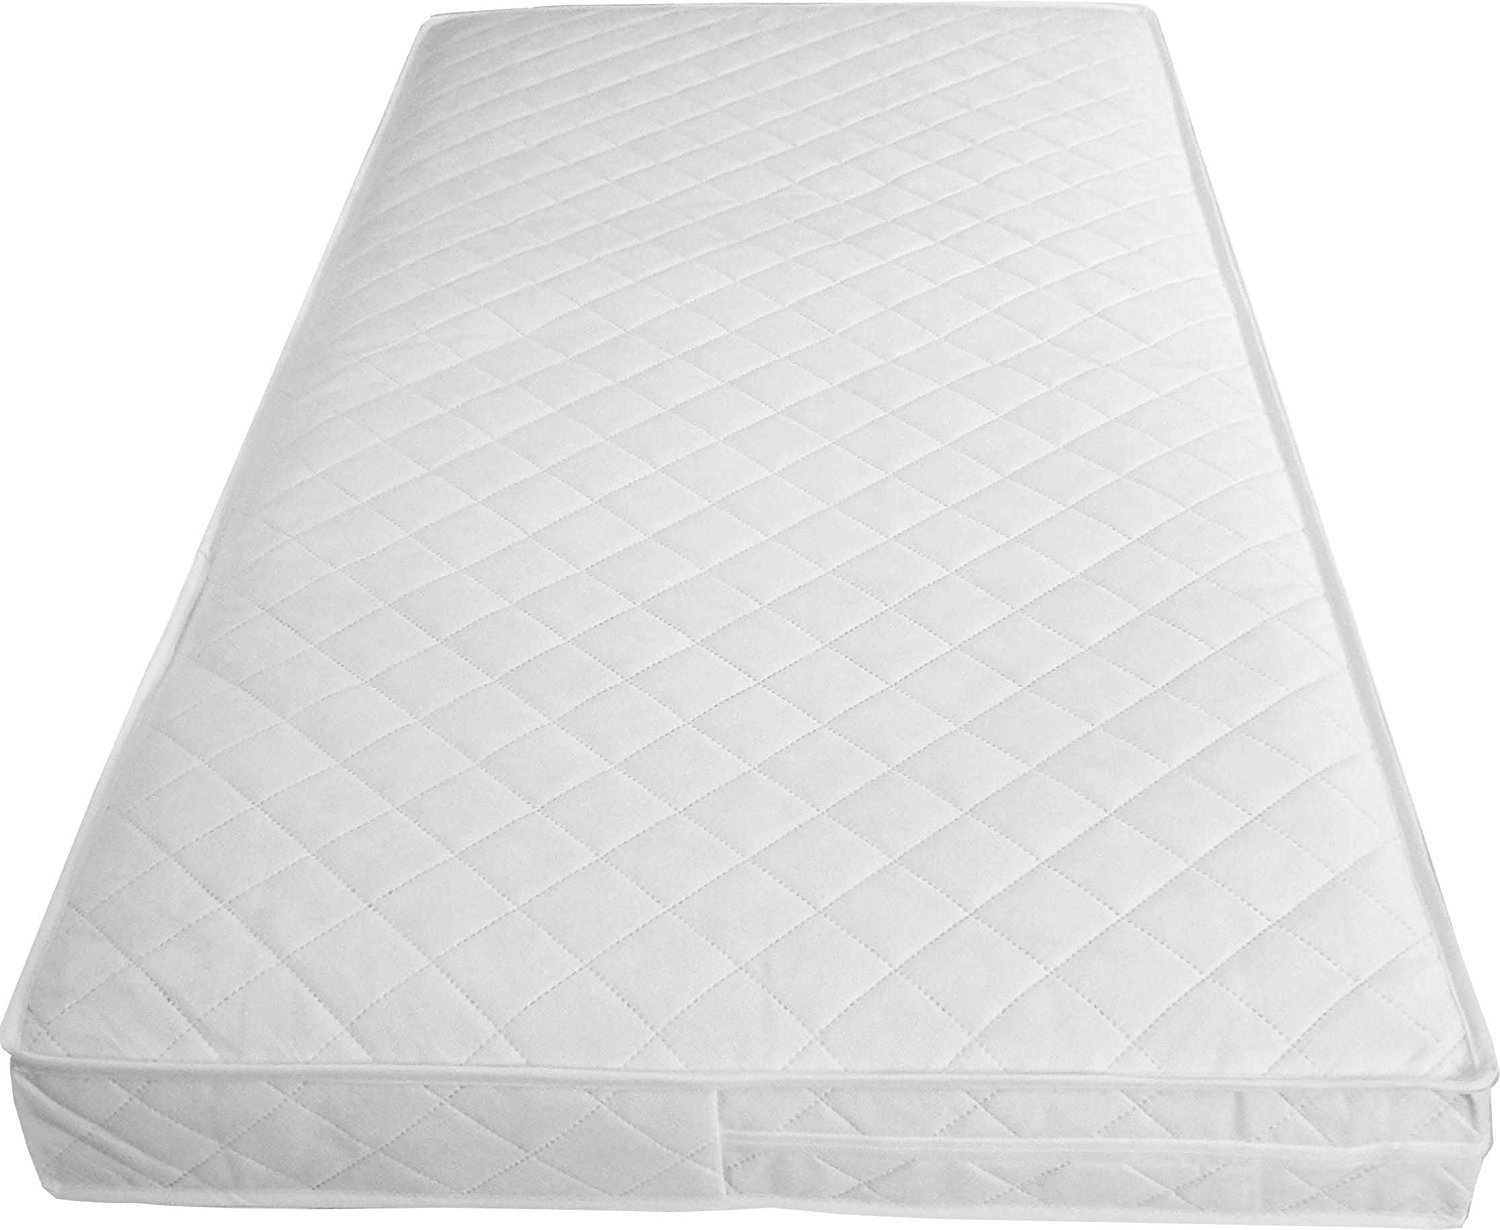 Mother Nurture Spring Mattress Fits Boori Cot, 132 x 77 cm Nursery Connections Limited MN68